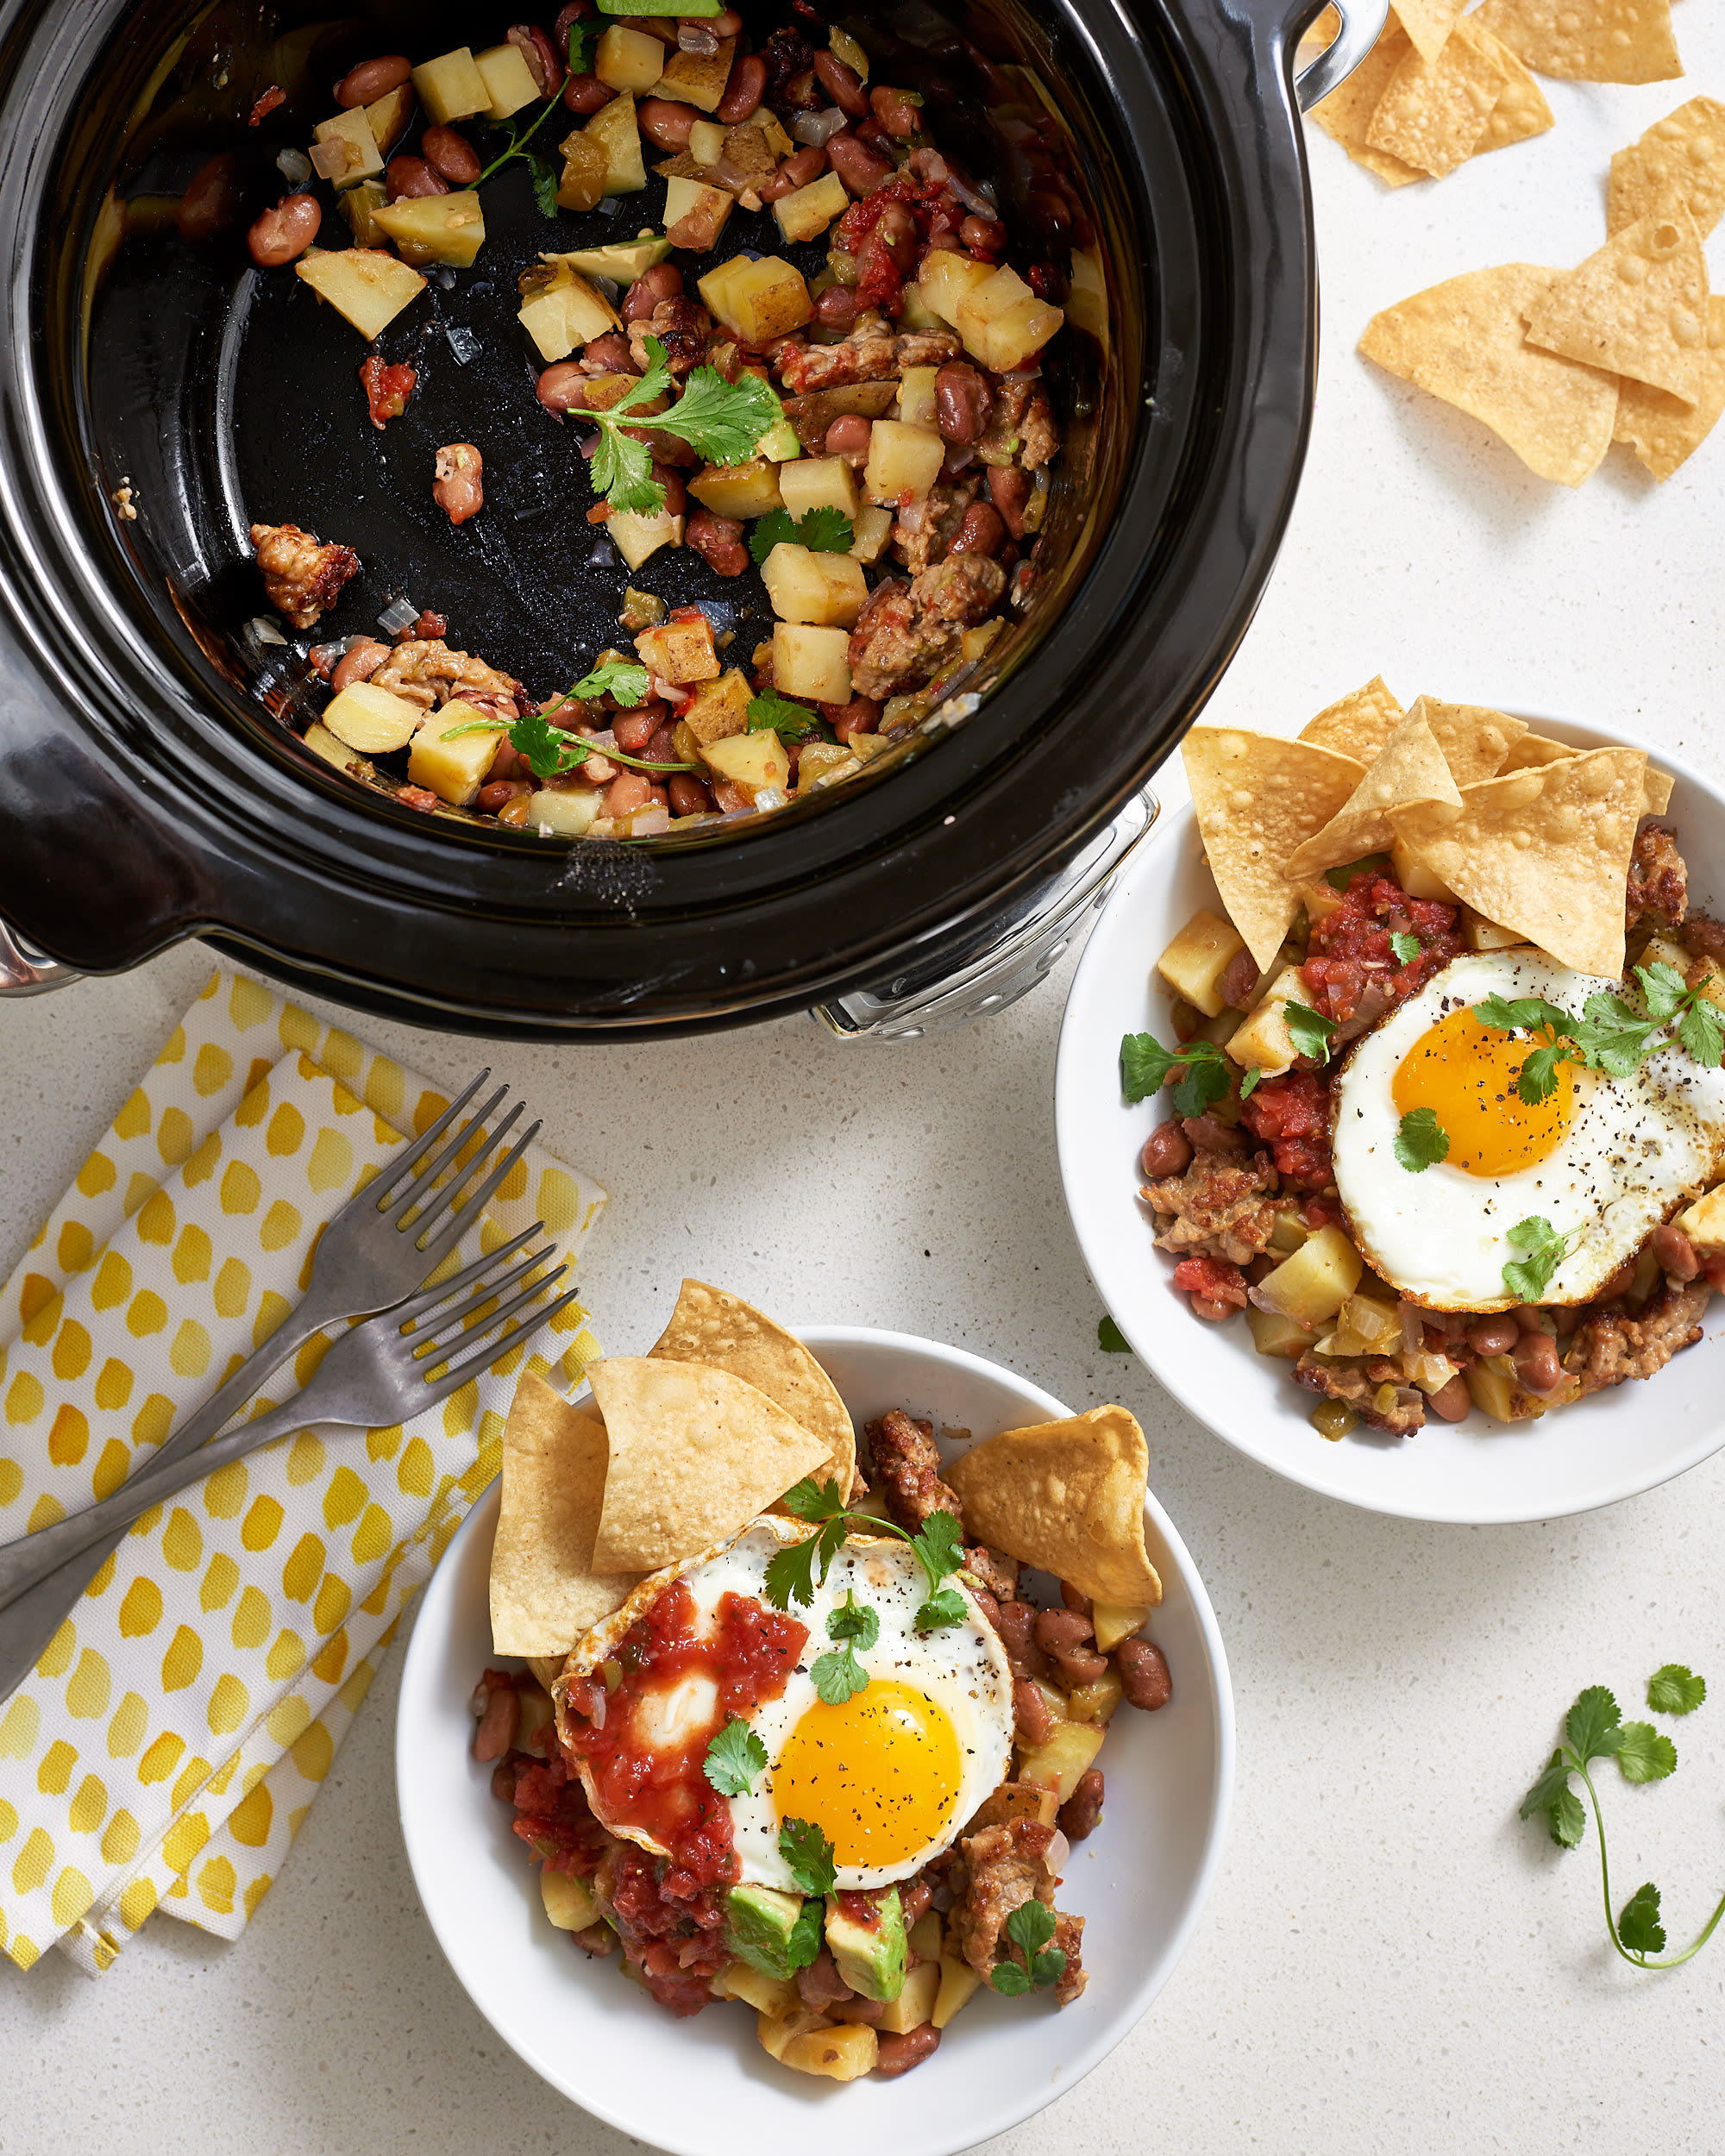 How To Make Slow Cooker Breakfast Burrito Bowls: gallery image 7